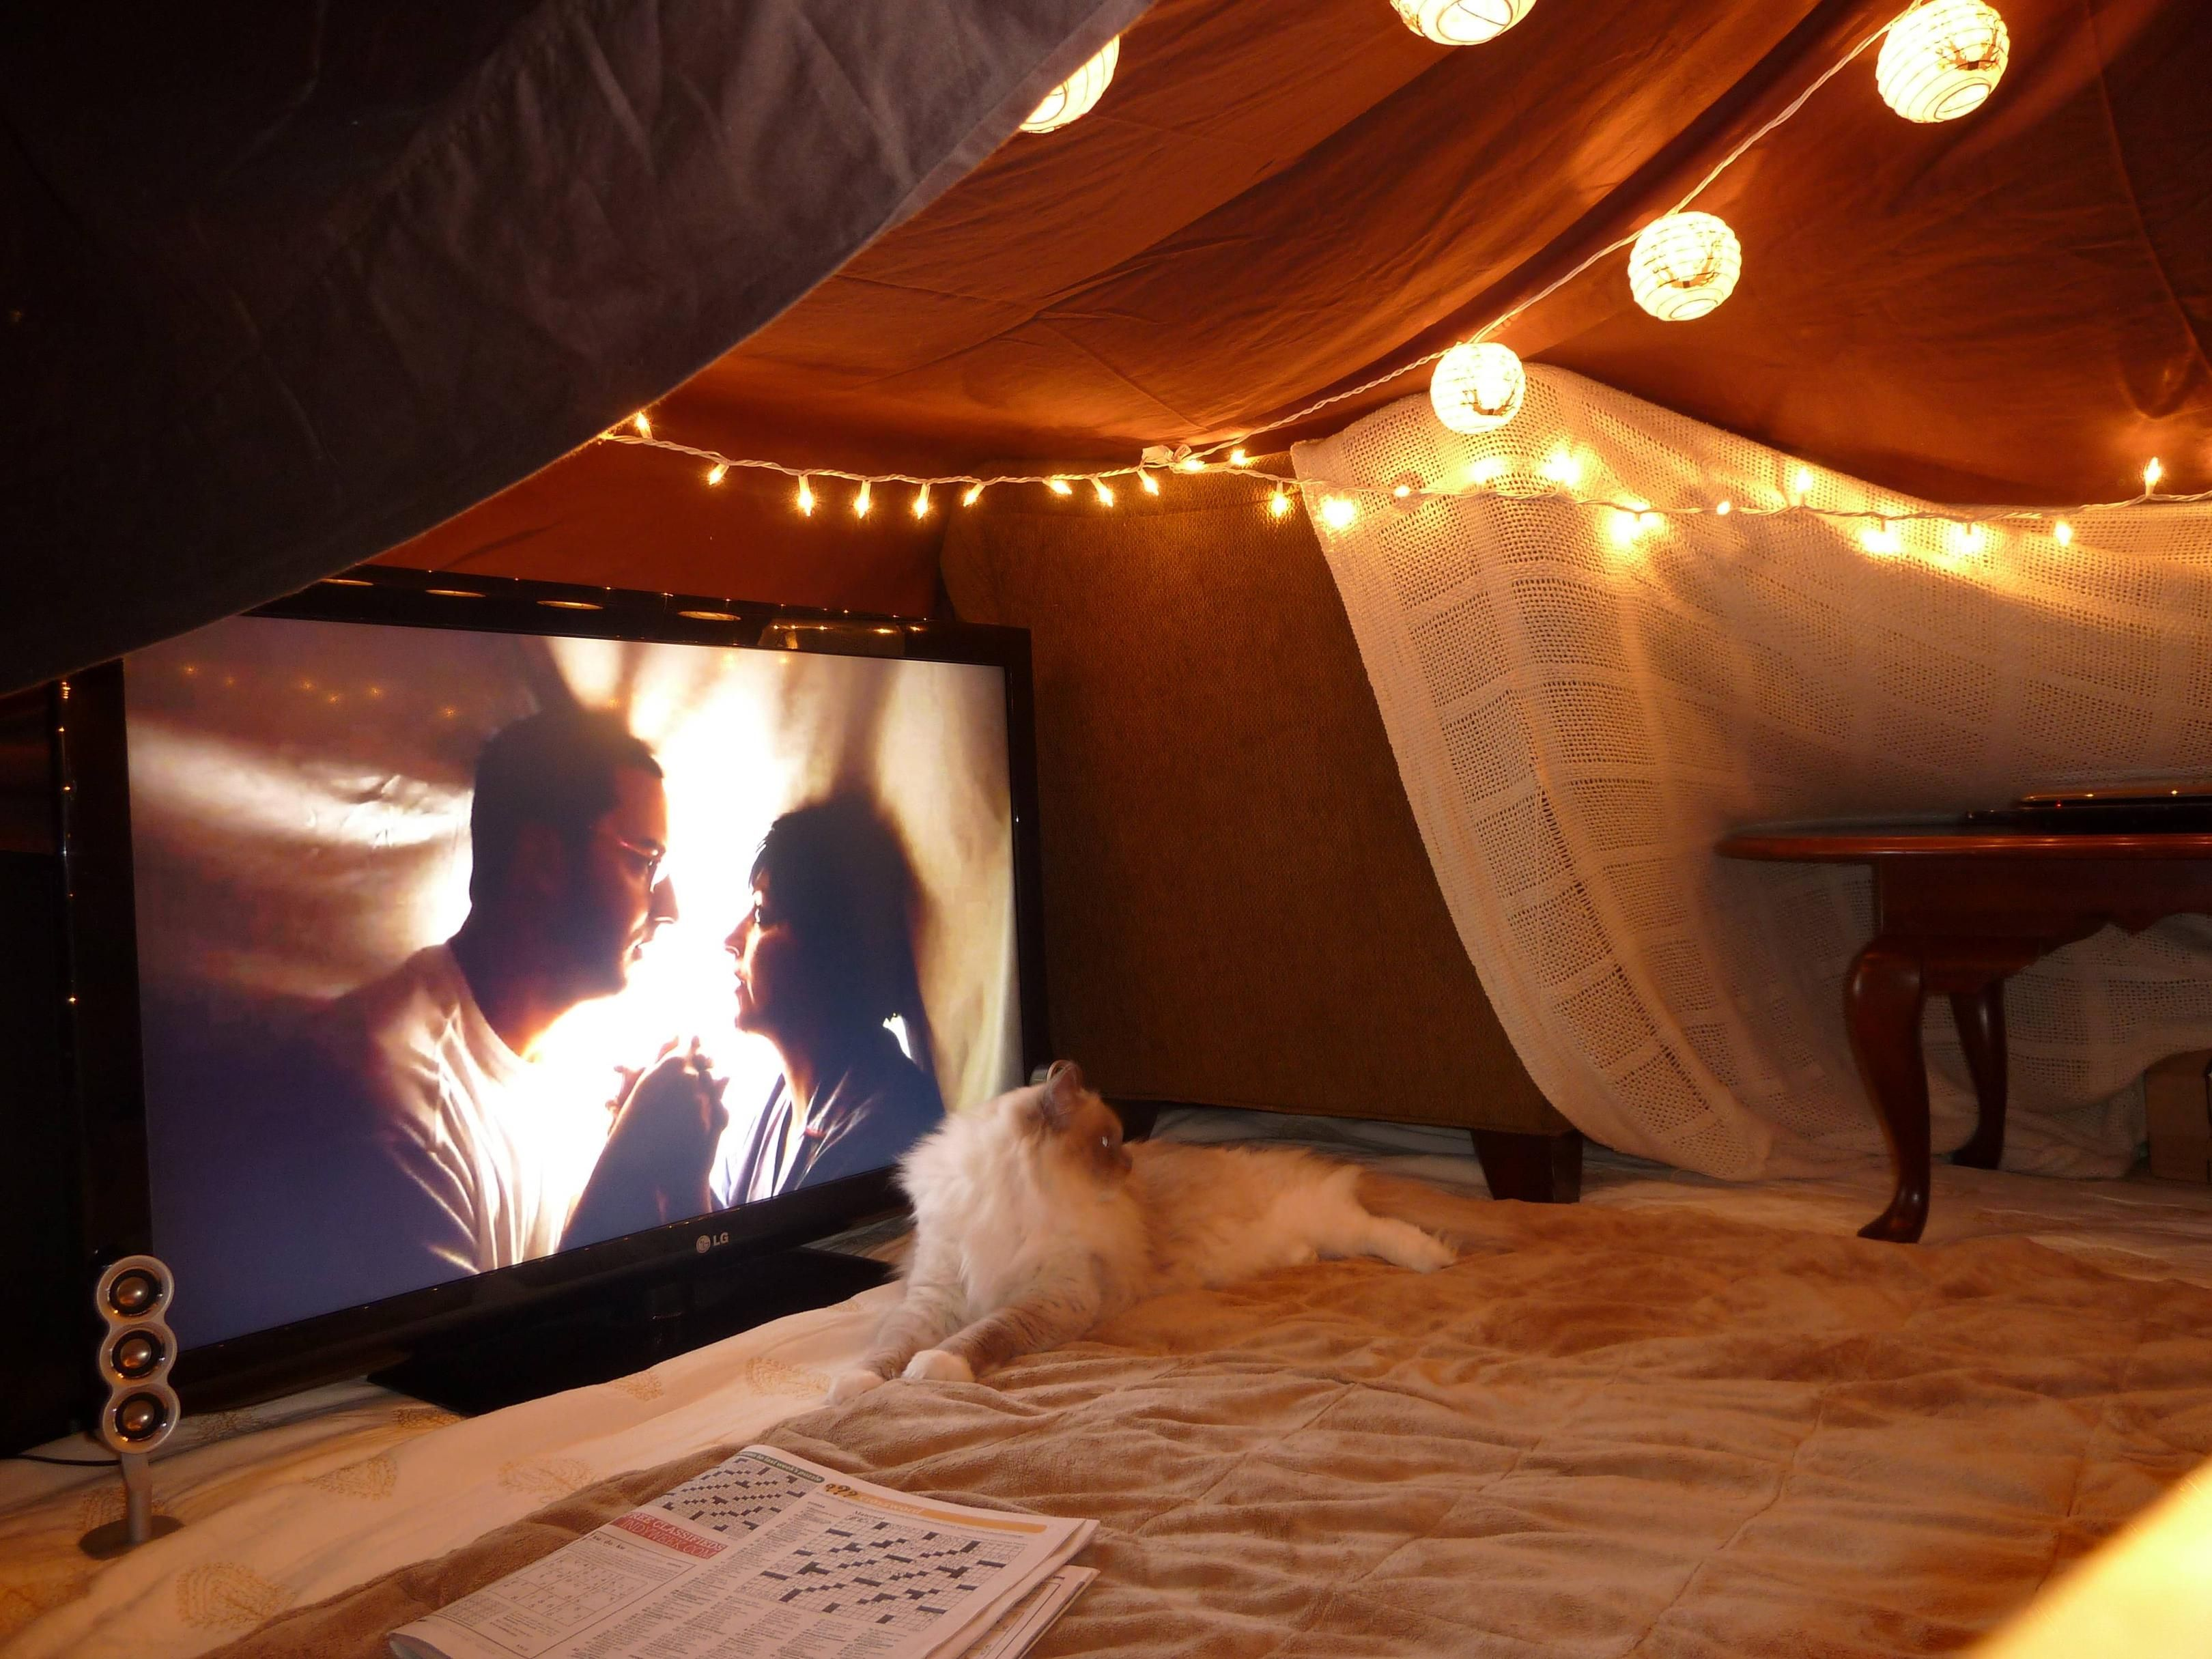 The Inside Of My Blanket Fort While Watching An Arrested Development Scene Involving A